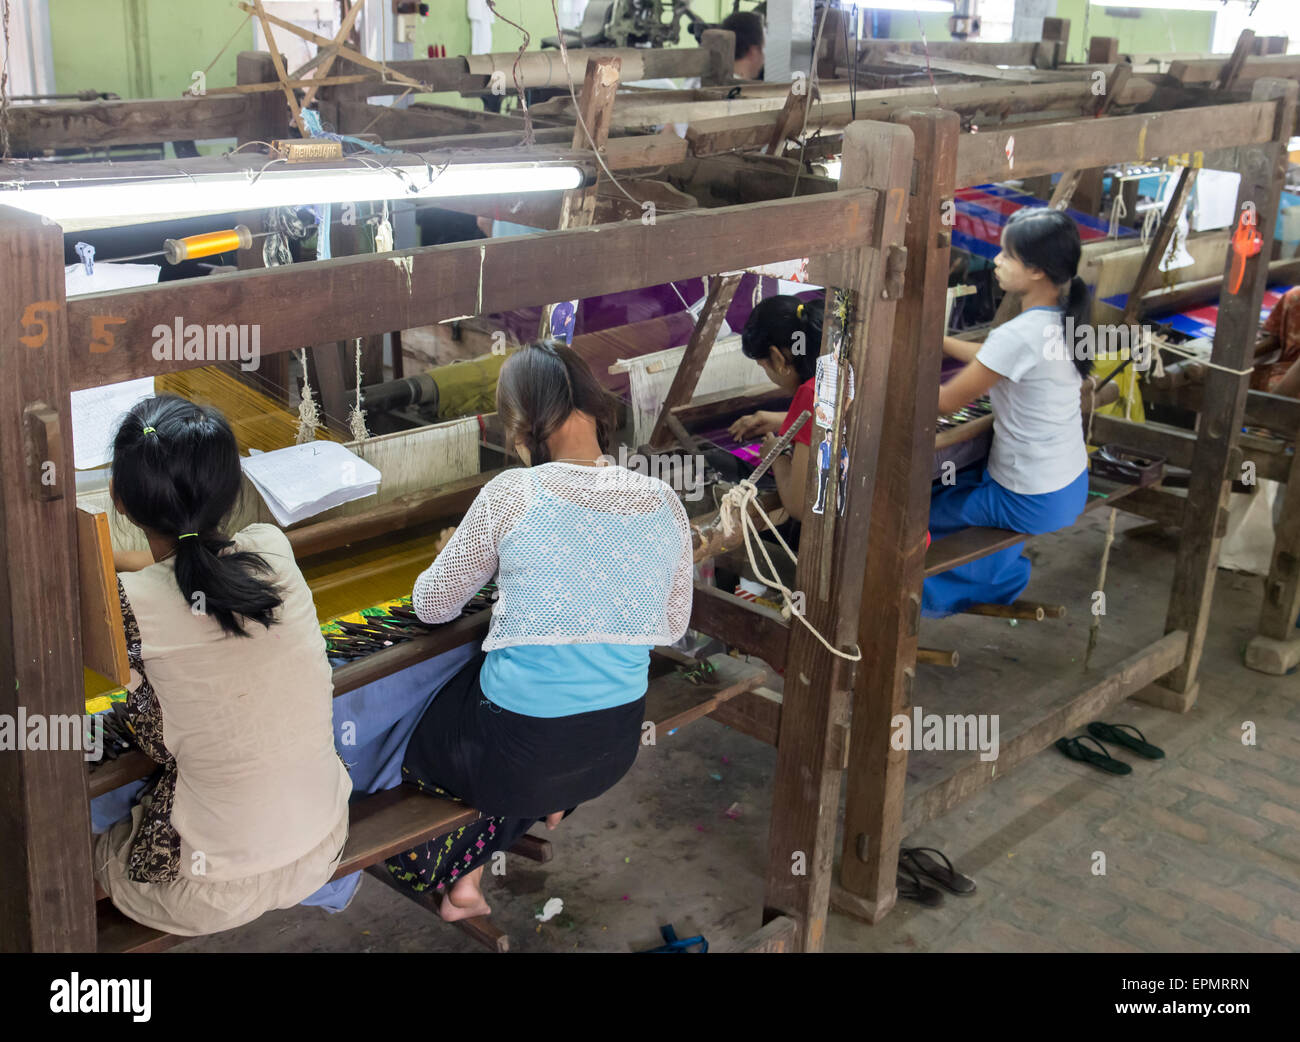 Weaving Workshop With Women Working On Looms Stock Photo